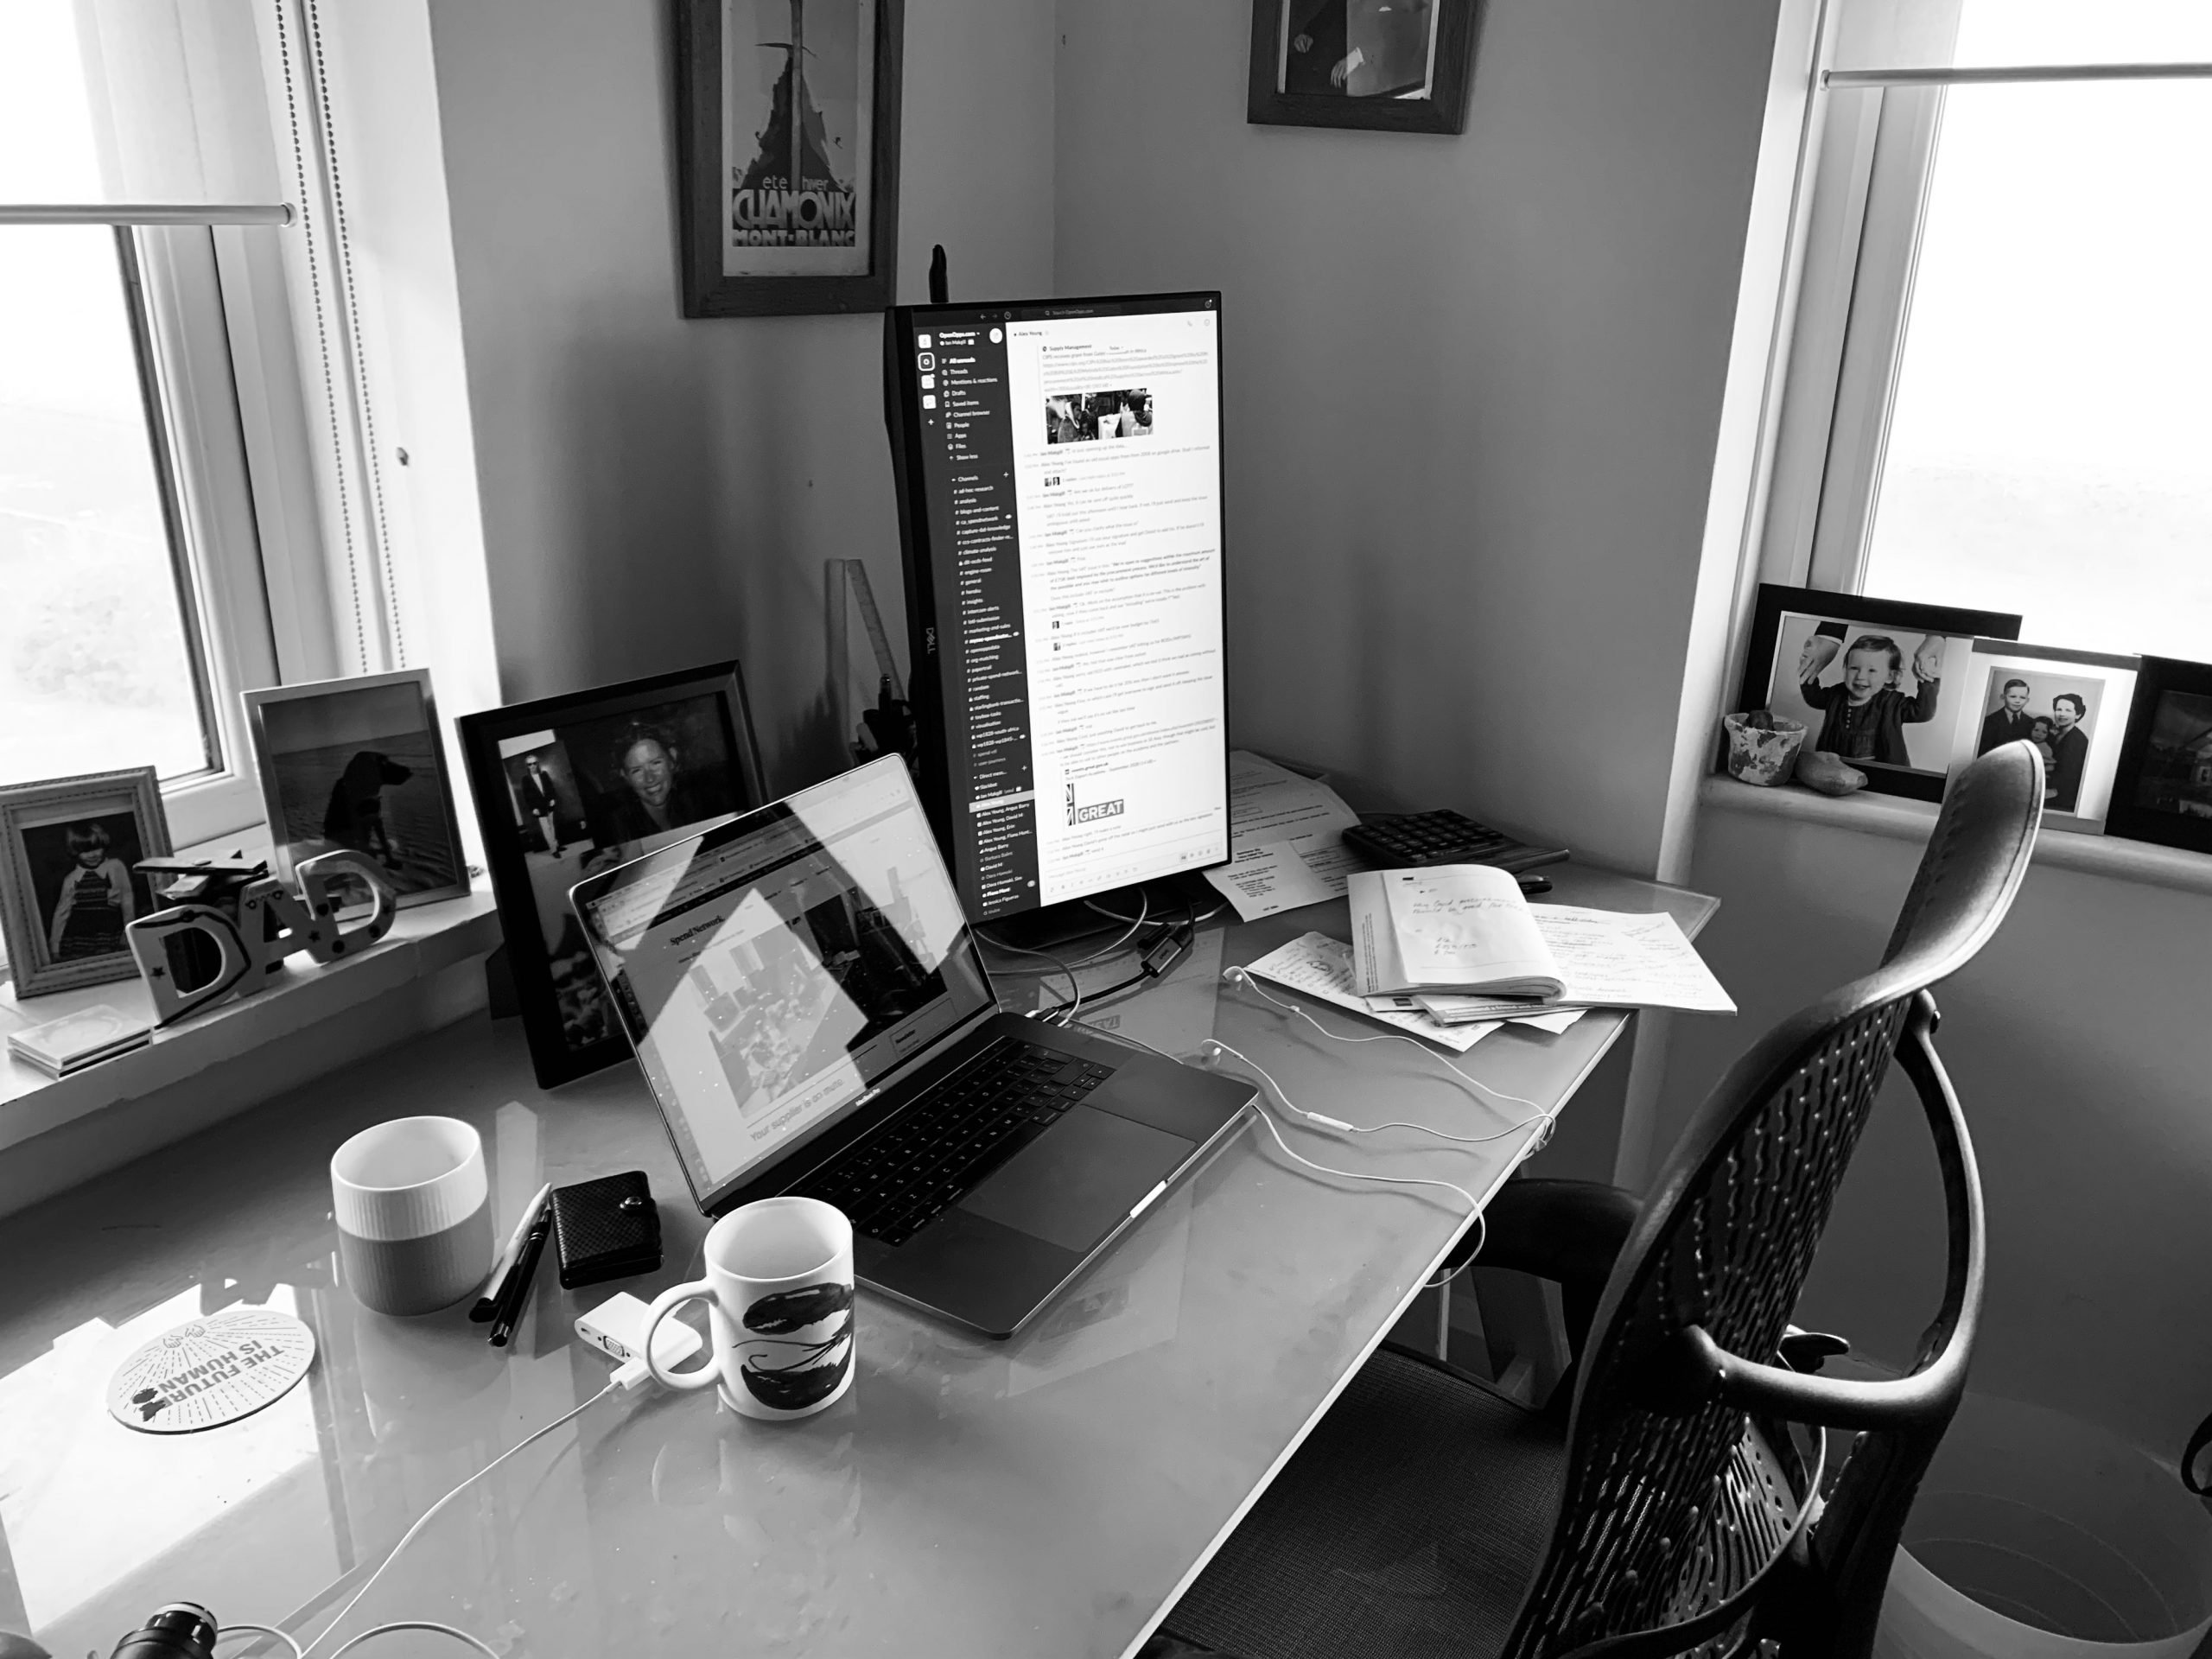 Desk with screens, chair and cups